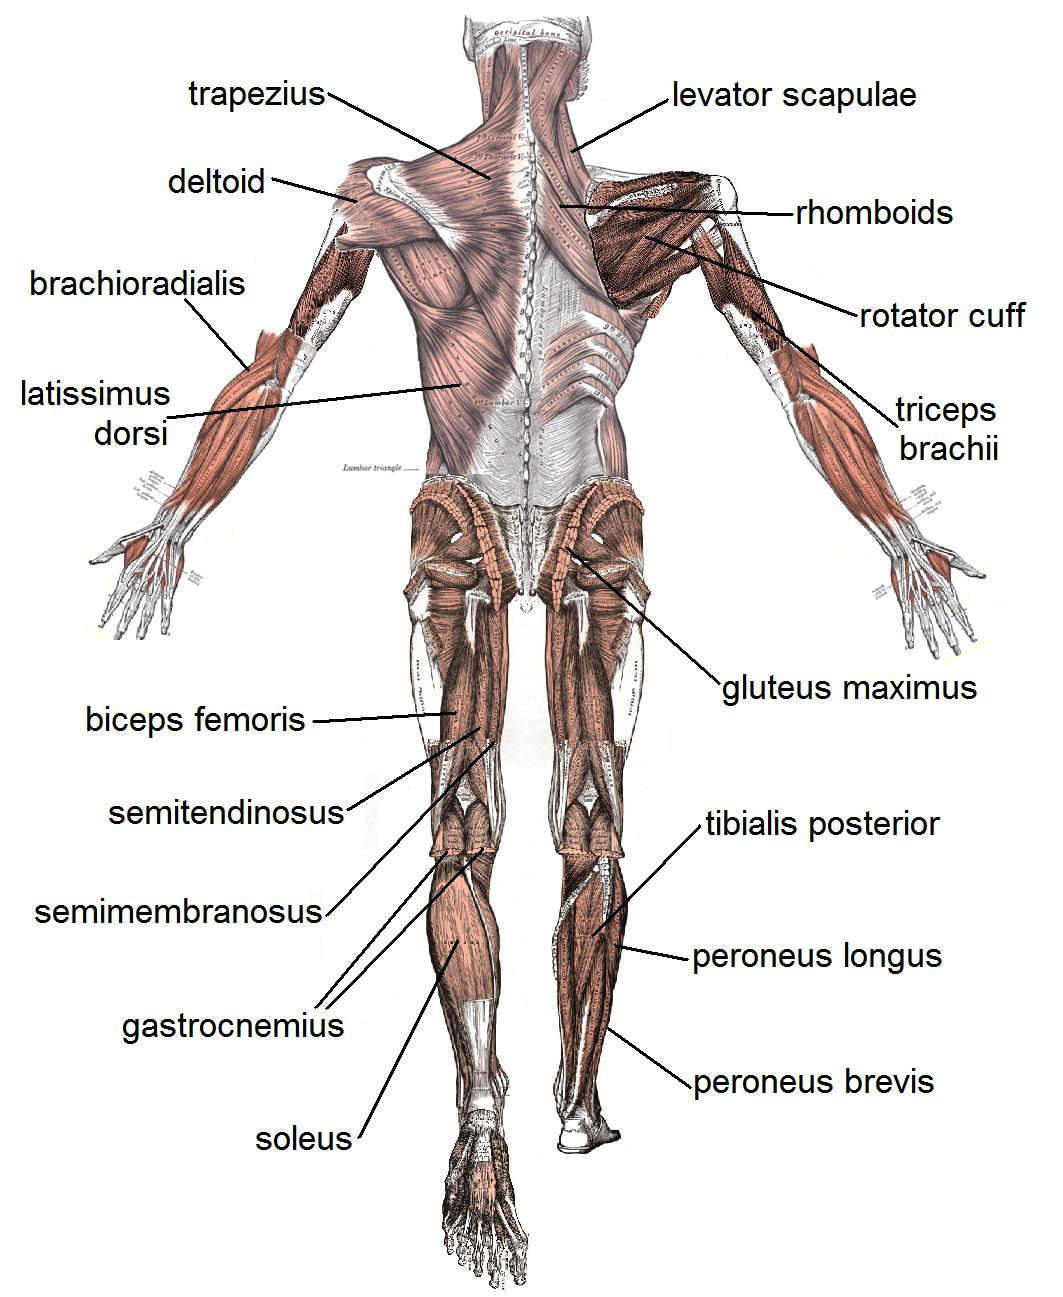 types of muscles | these bones of mine, Muscles